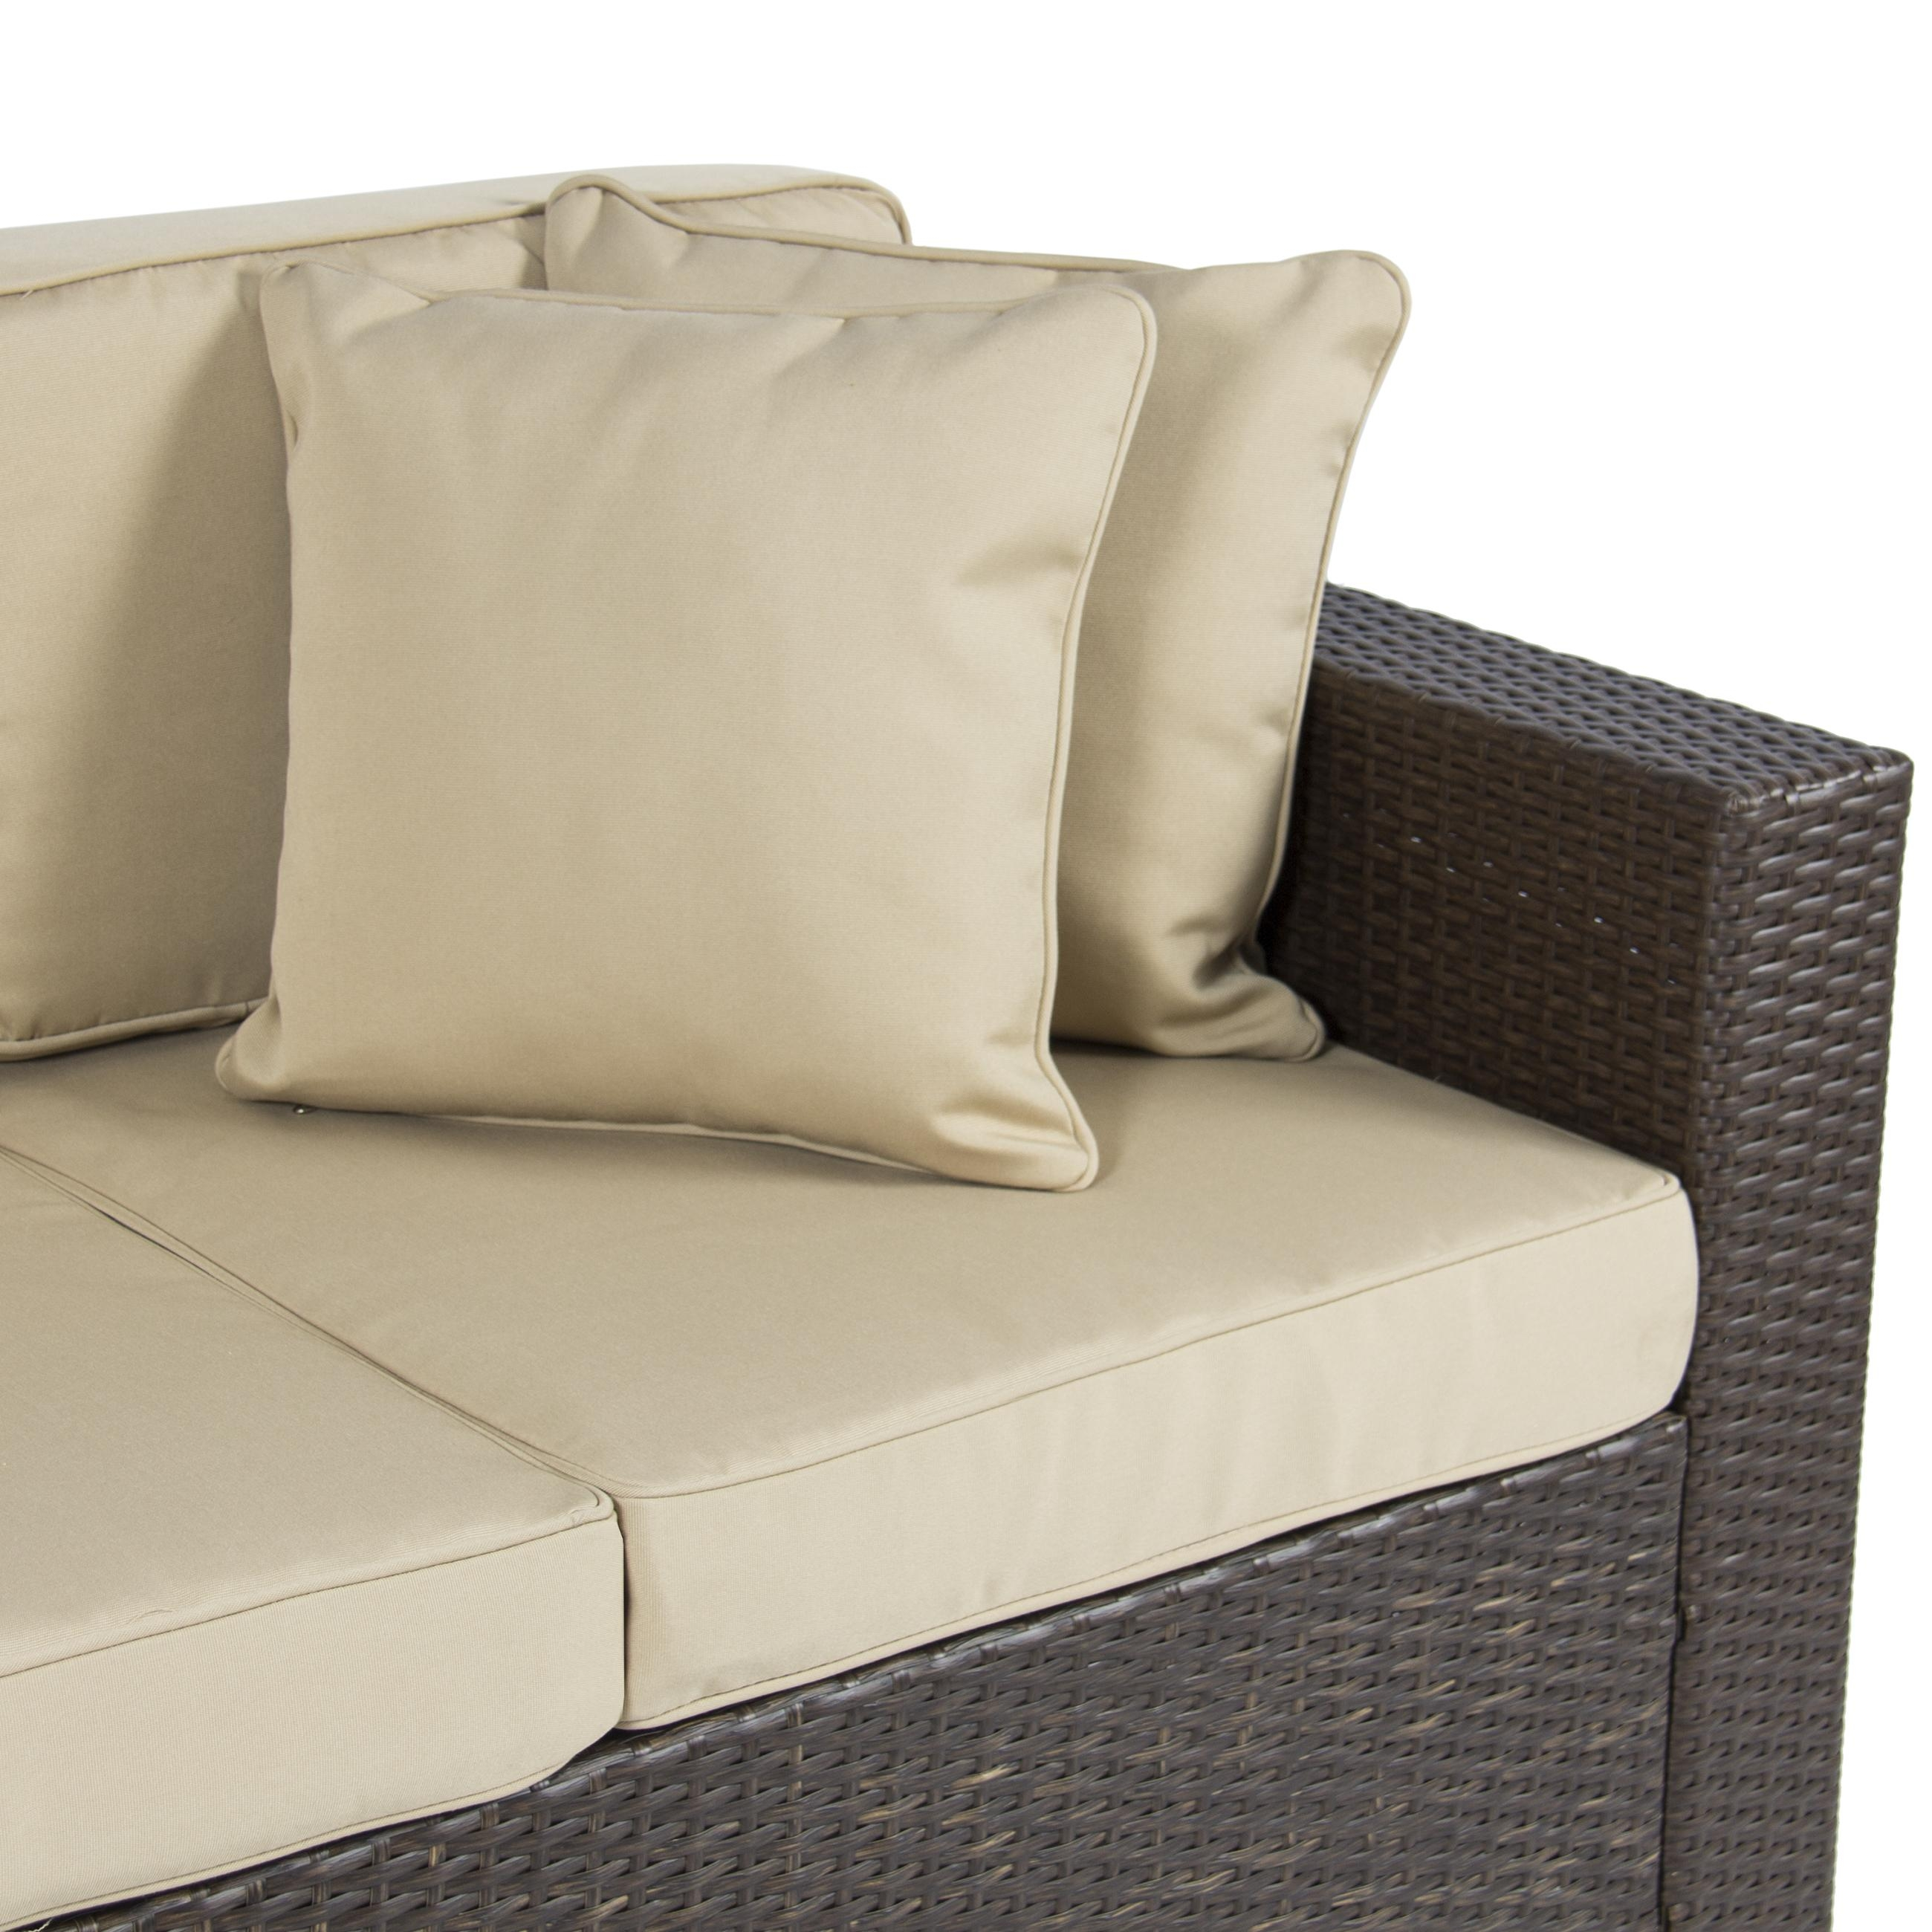 Outdoor Wicker Patio Furniture Sofa 3 Seater Luxury Comfort Brown With Comfortable Sofas And Chairs (Image 12 of 20)